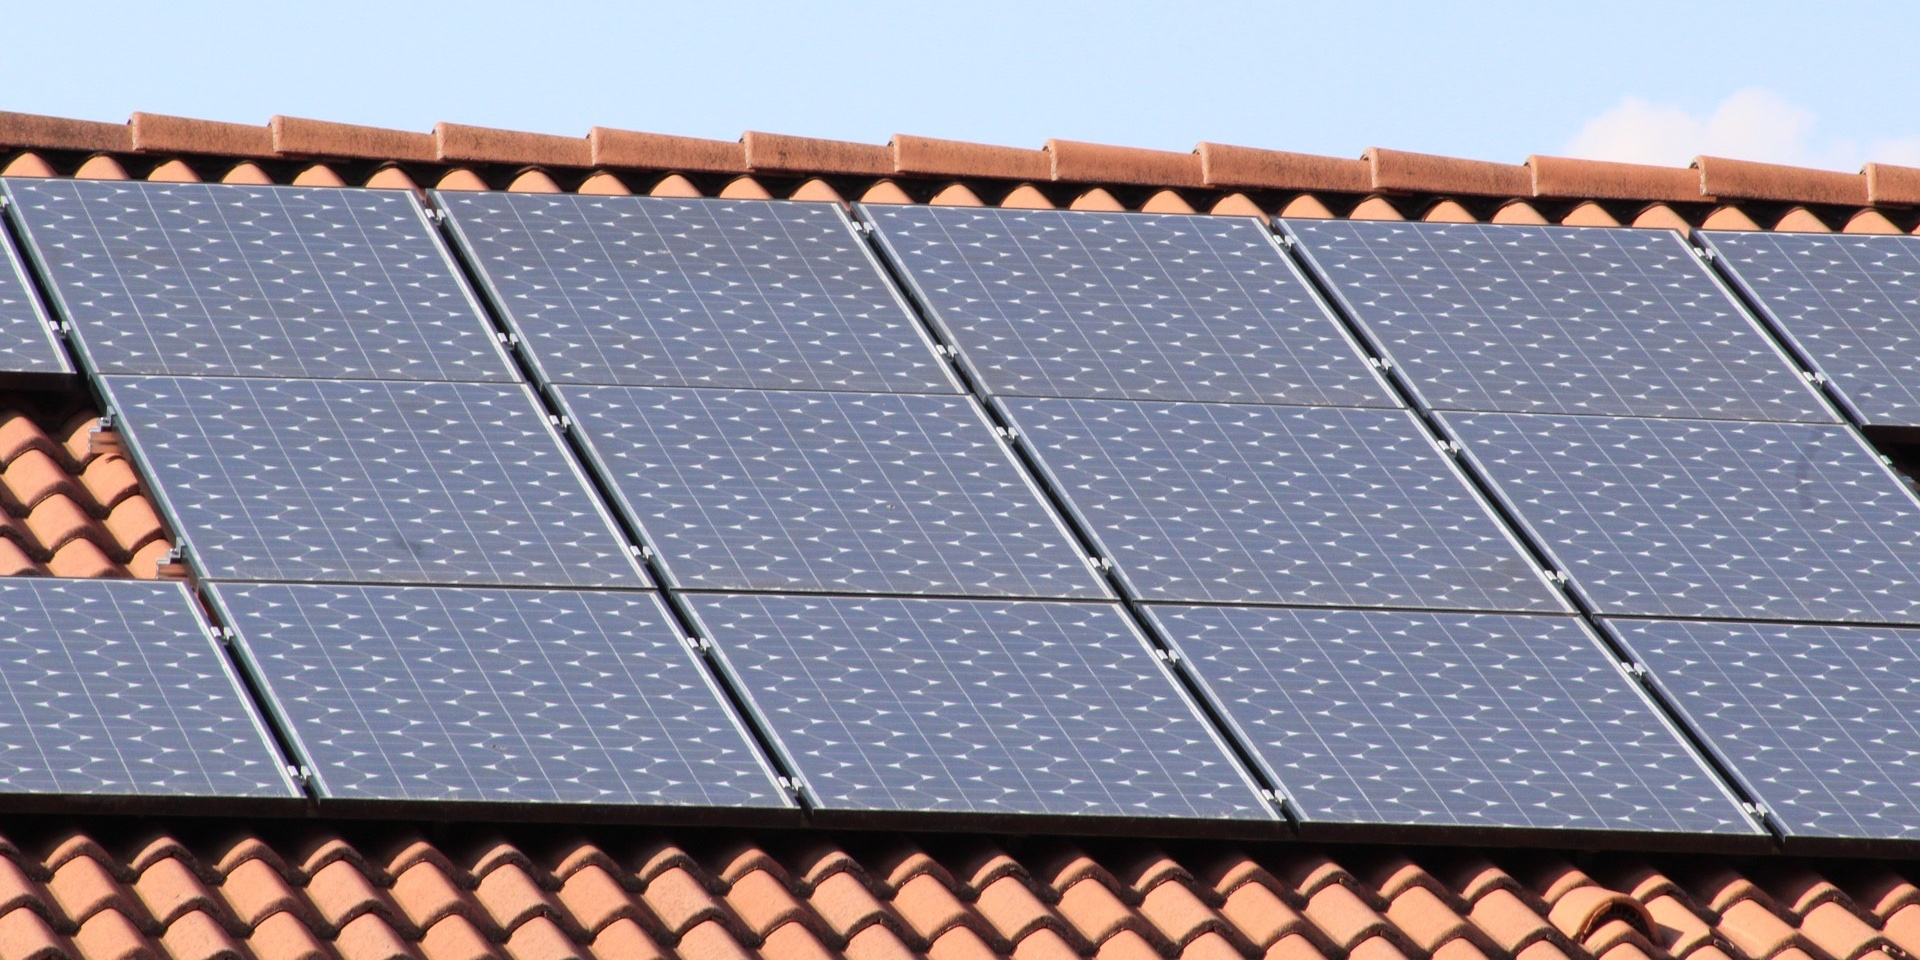 EGEB: Solar capacity to double in next five years, UK energy plans, solar roof for Notre Dame rebuild?